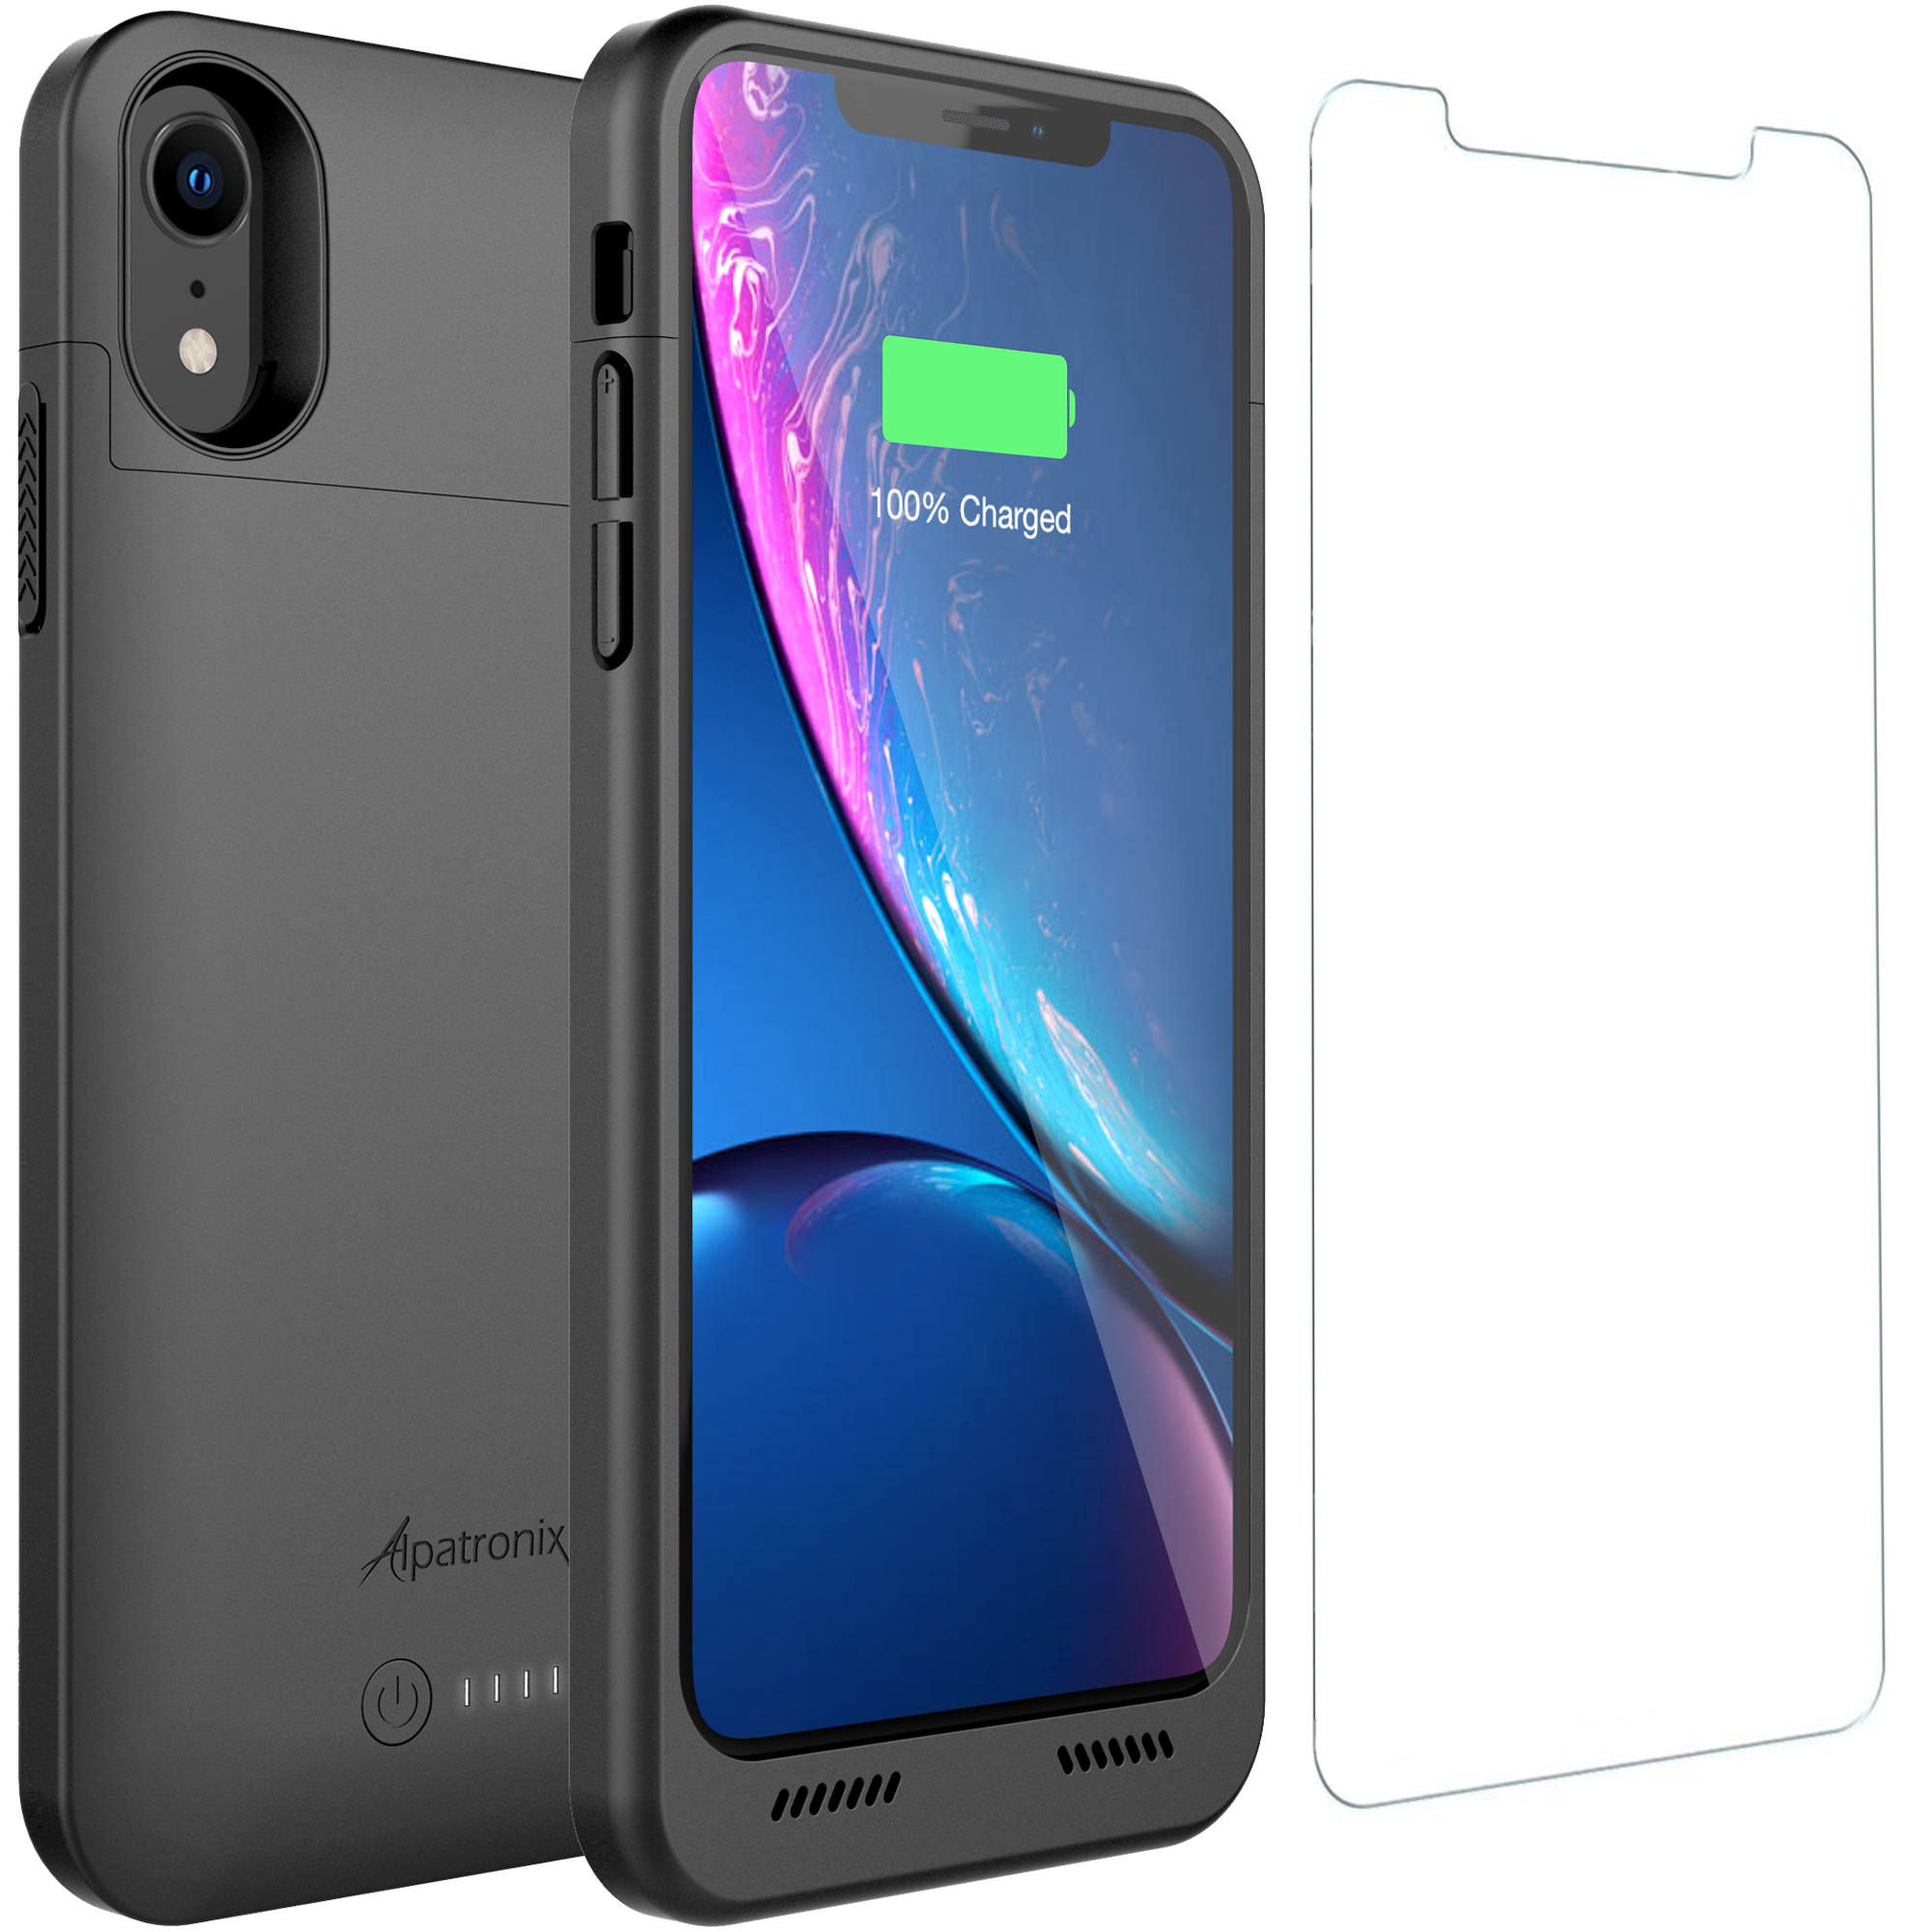 Alpatronix BXXrt 3500mAh Protective Battery Charger Case Compatible with Apple iPhone XR (6.1-inch) with Qi Wireless Charging